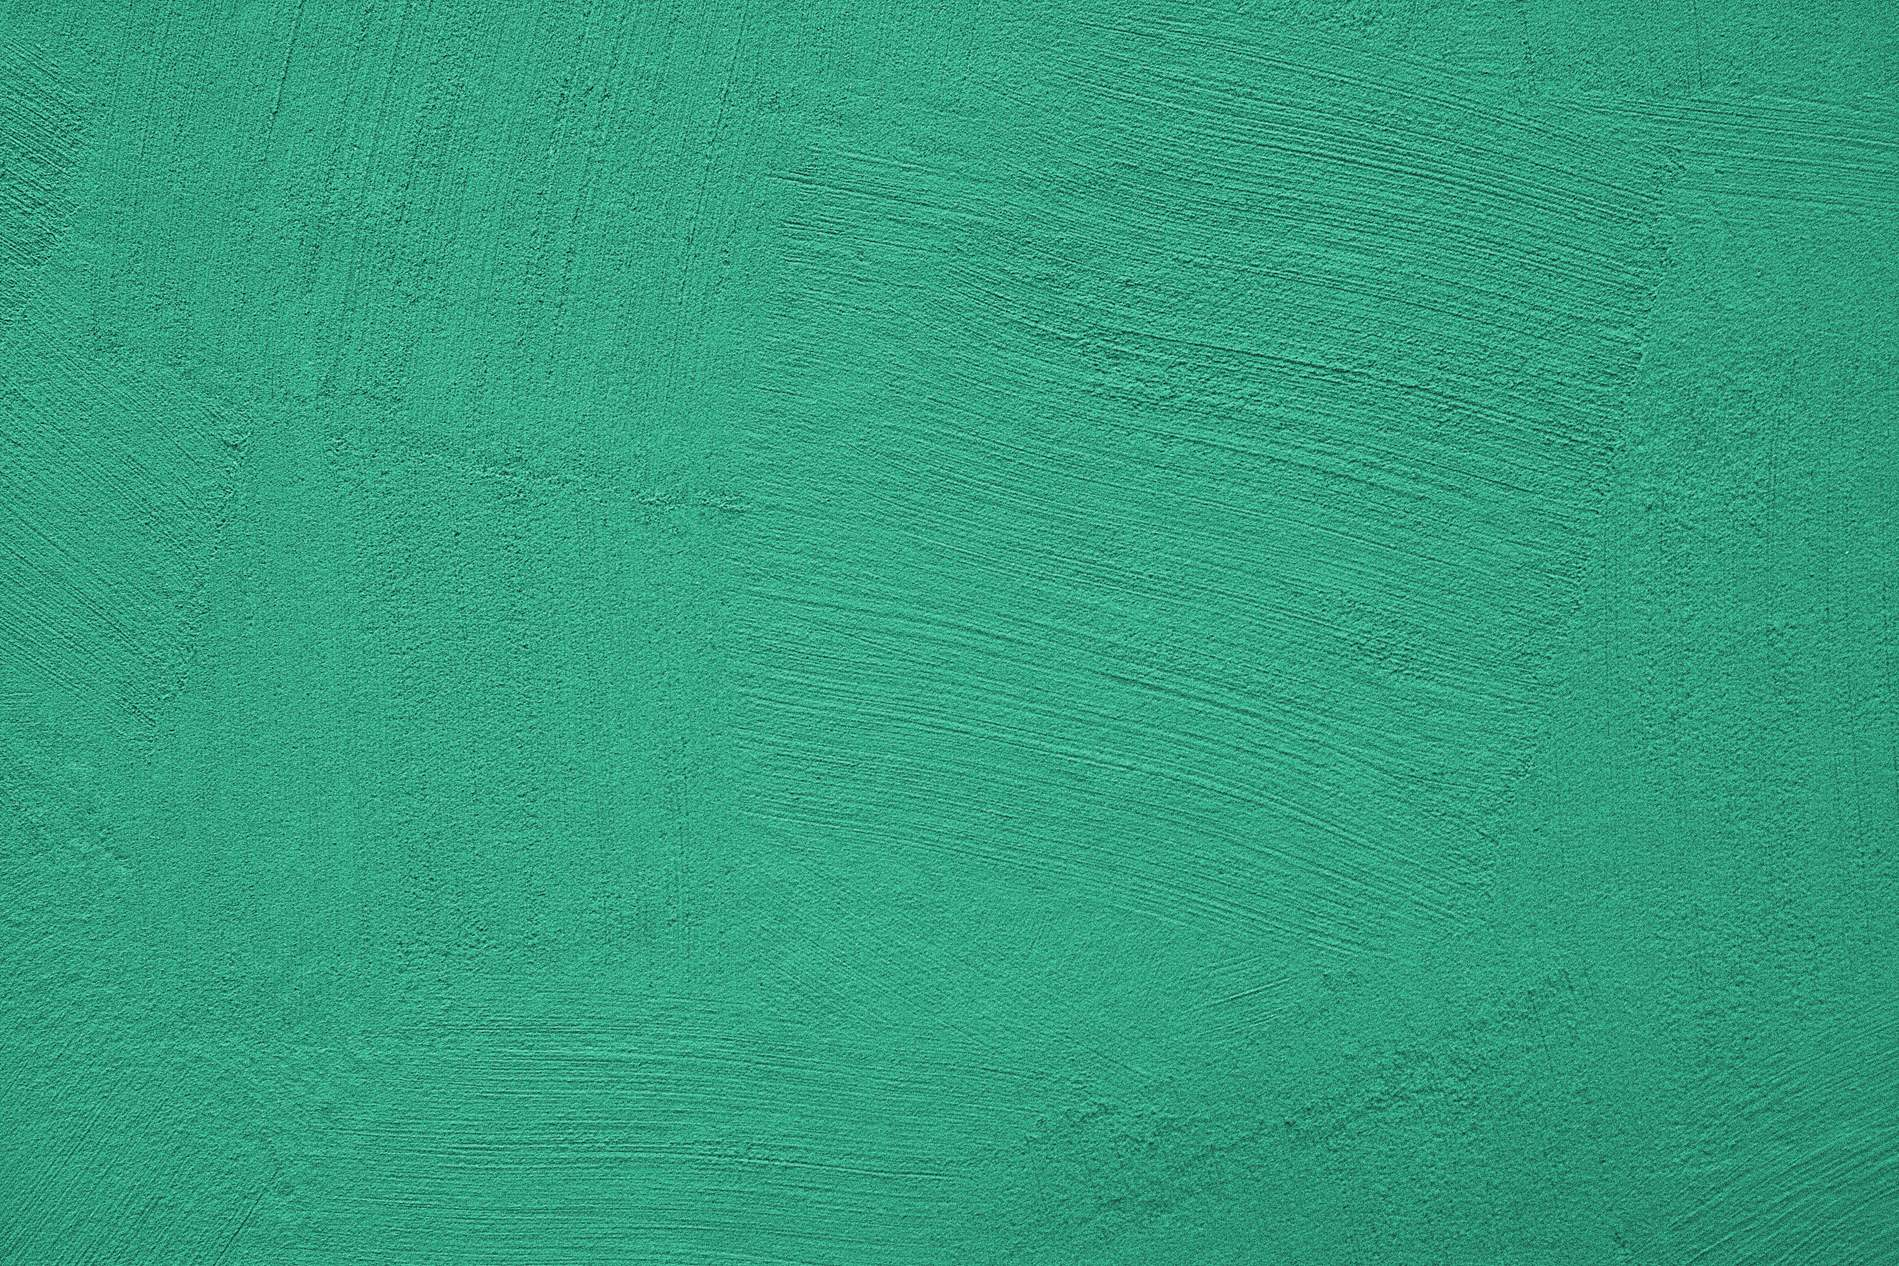 Vintage Green Painted Concrete Wall Texture